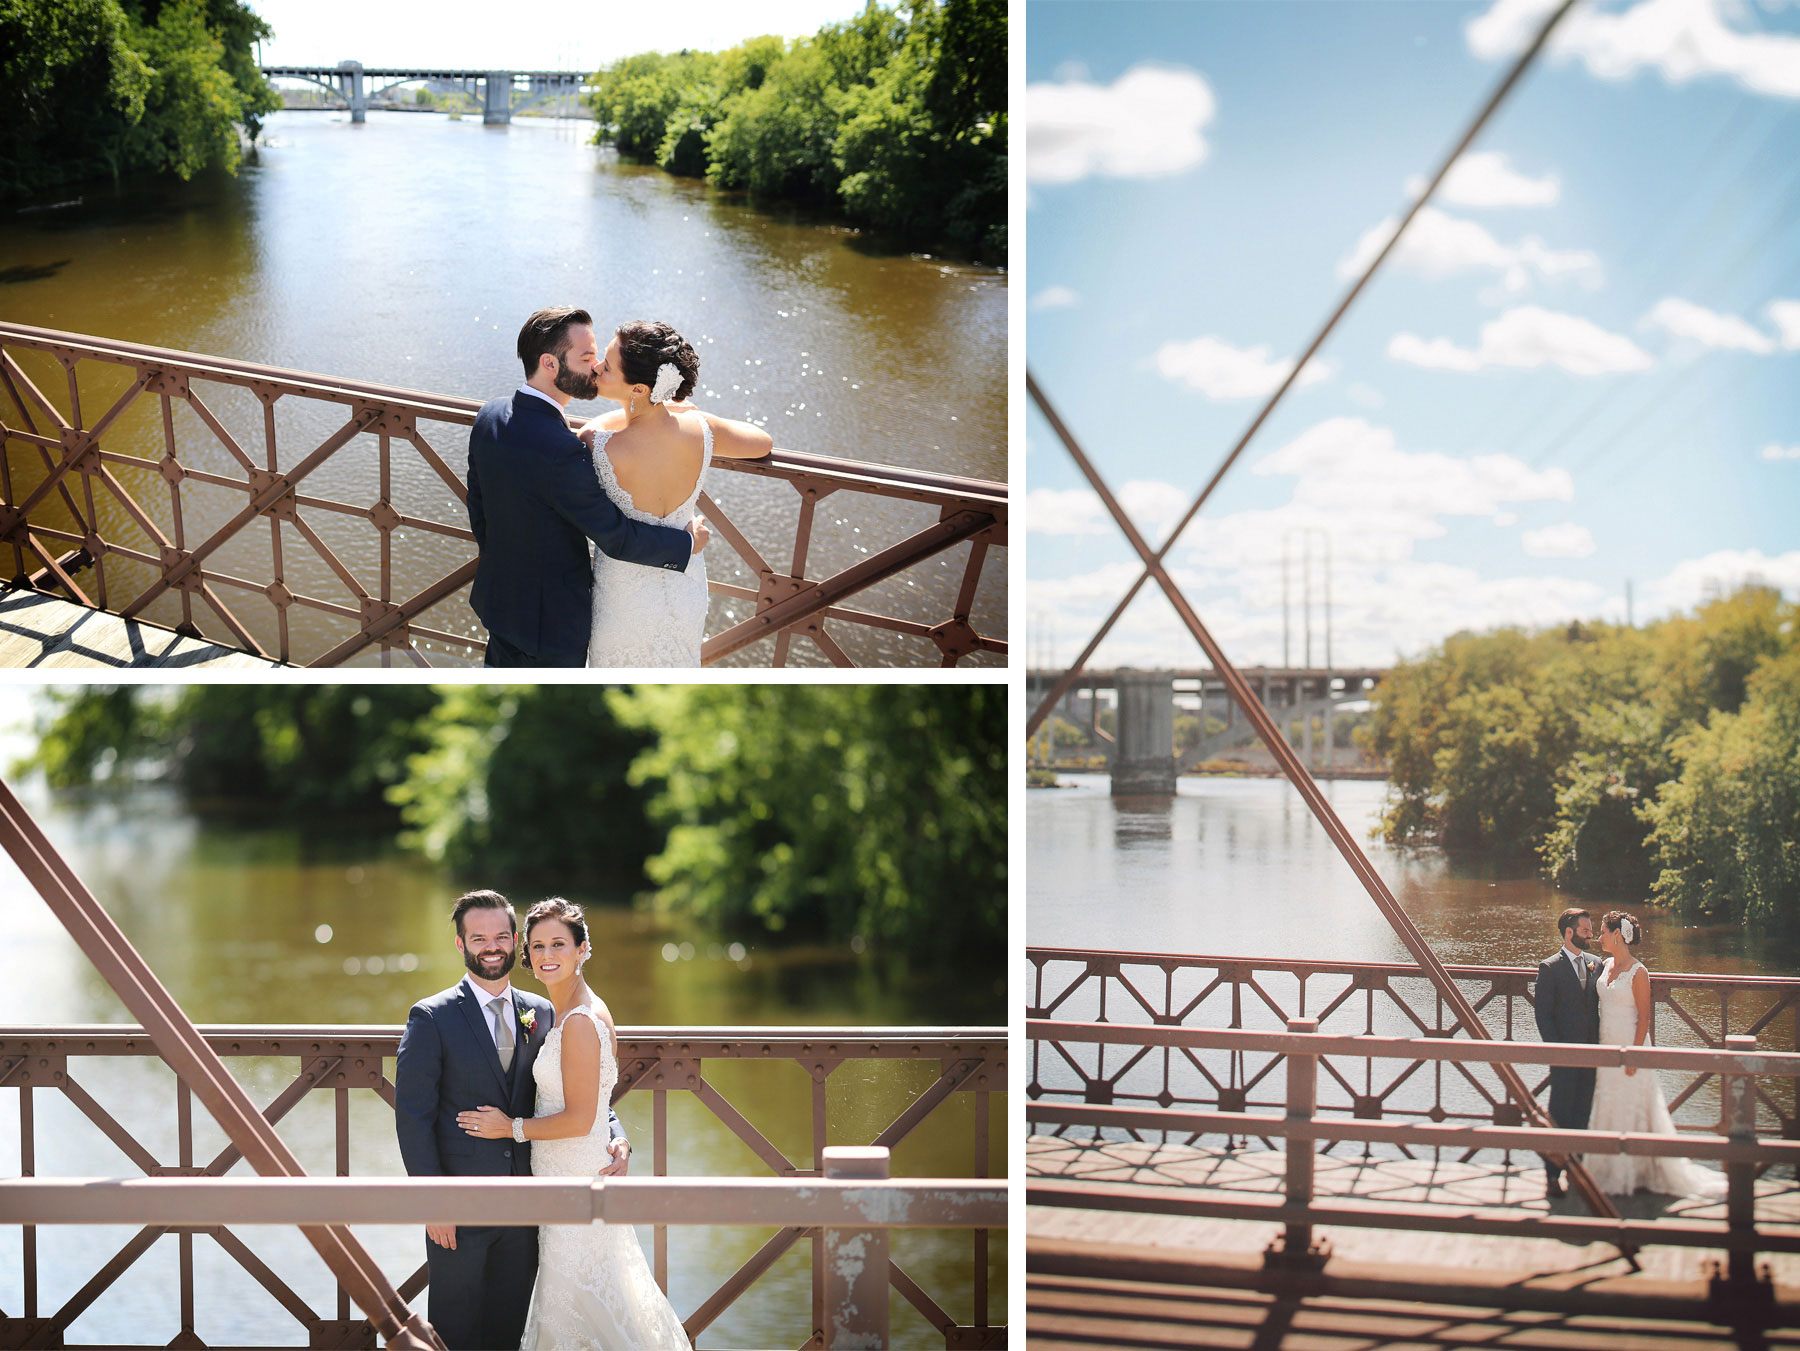 08-Minneapolis-Minnesota-Wedding-Photographer-by-Andrew-Vick-Photography-Summer-First-Meeting-Look-Bride-Groom-Merriam-Street-Bridge-Mississippi-River-Kiss-Vintage-Ashley-and-Eric.jpg